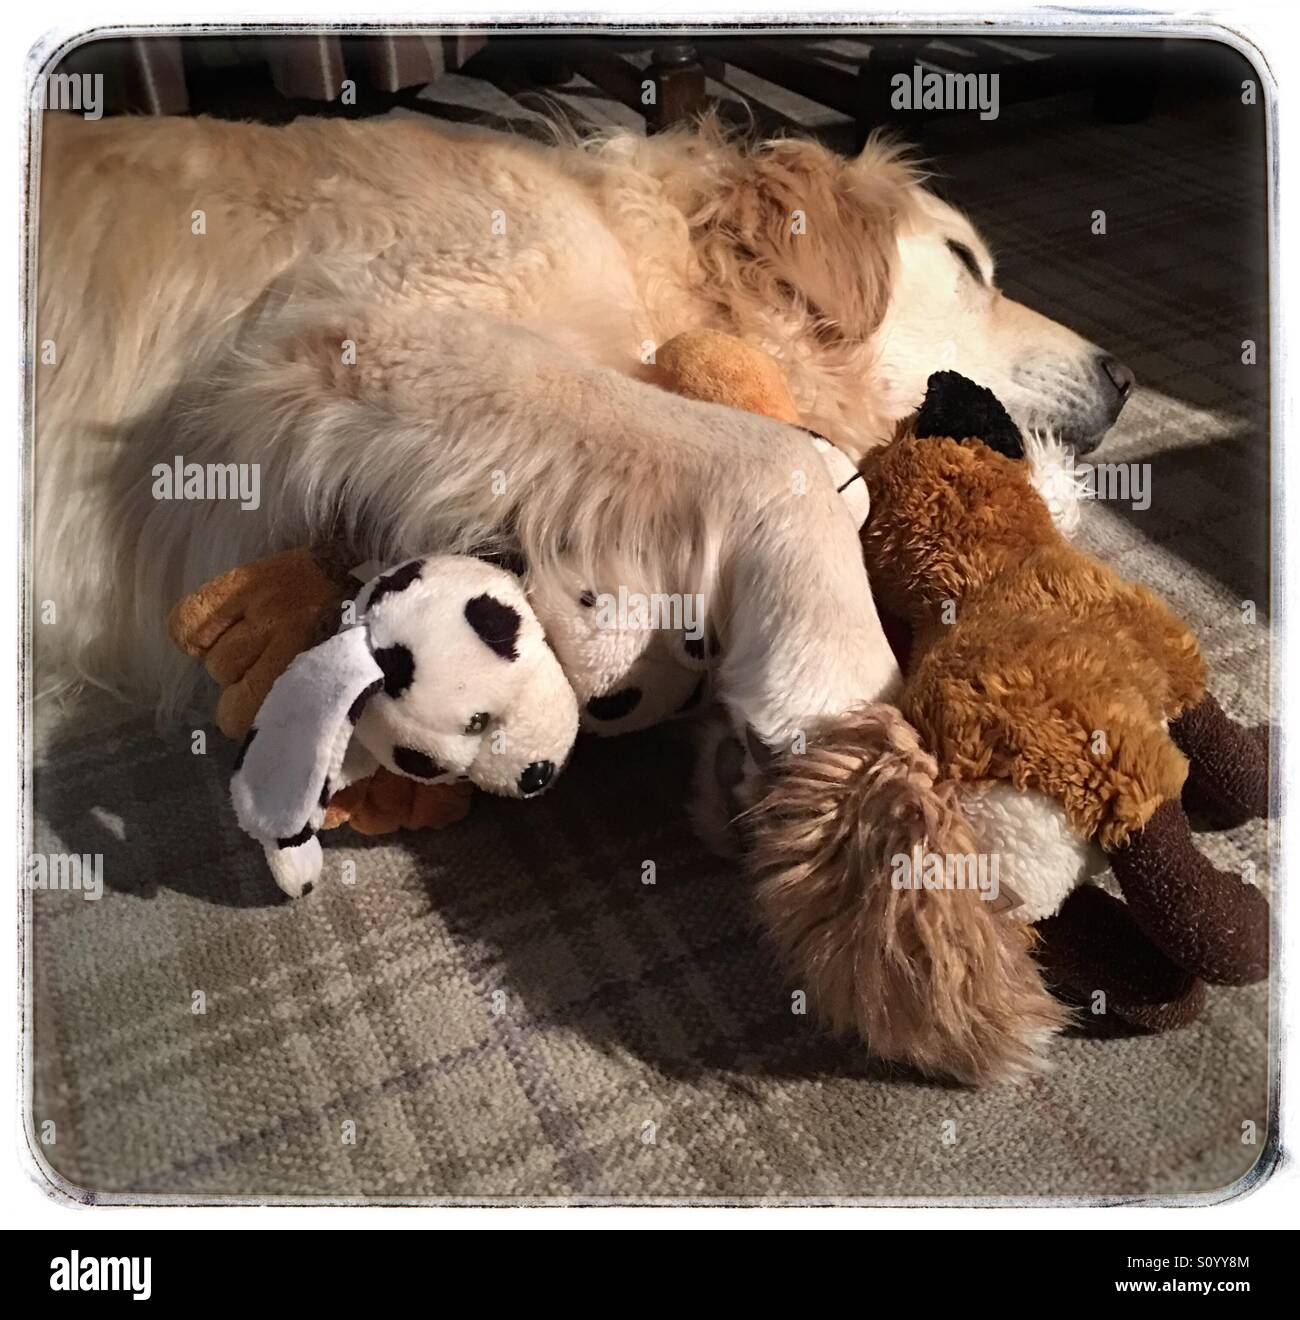 Golden retriever, called Ollie, dreaming of rabbits and walkies. Fox and dog toys keep him company while he snuggles - Stock Image